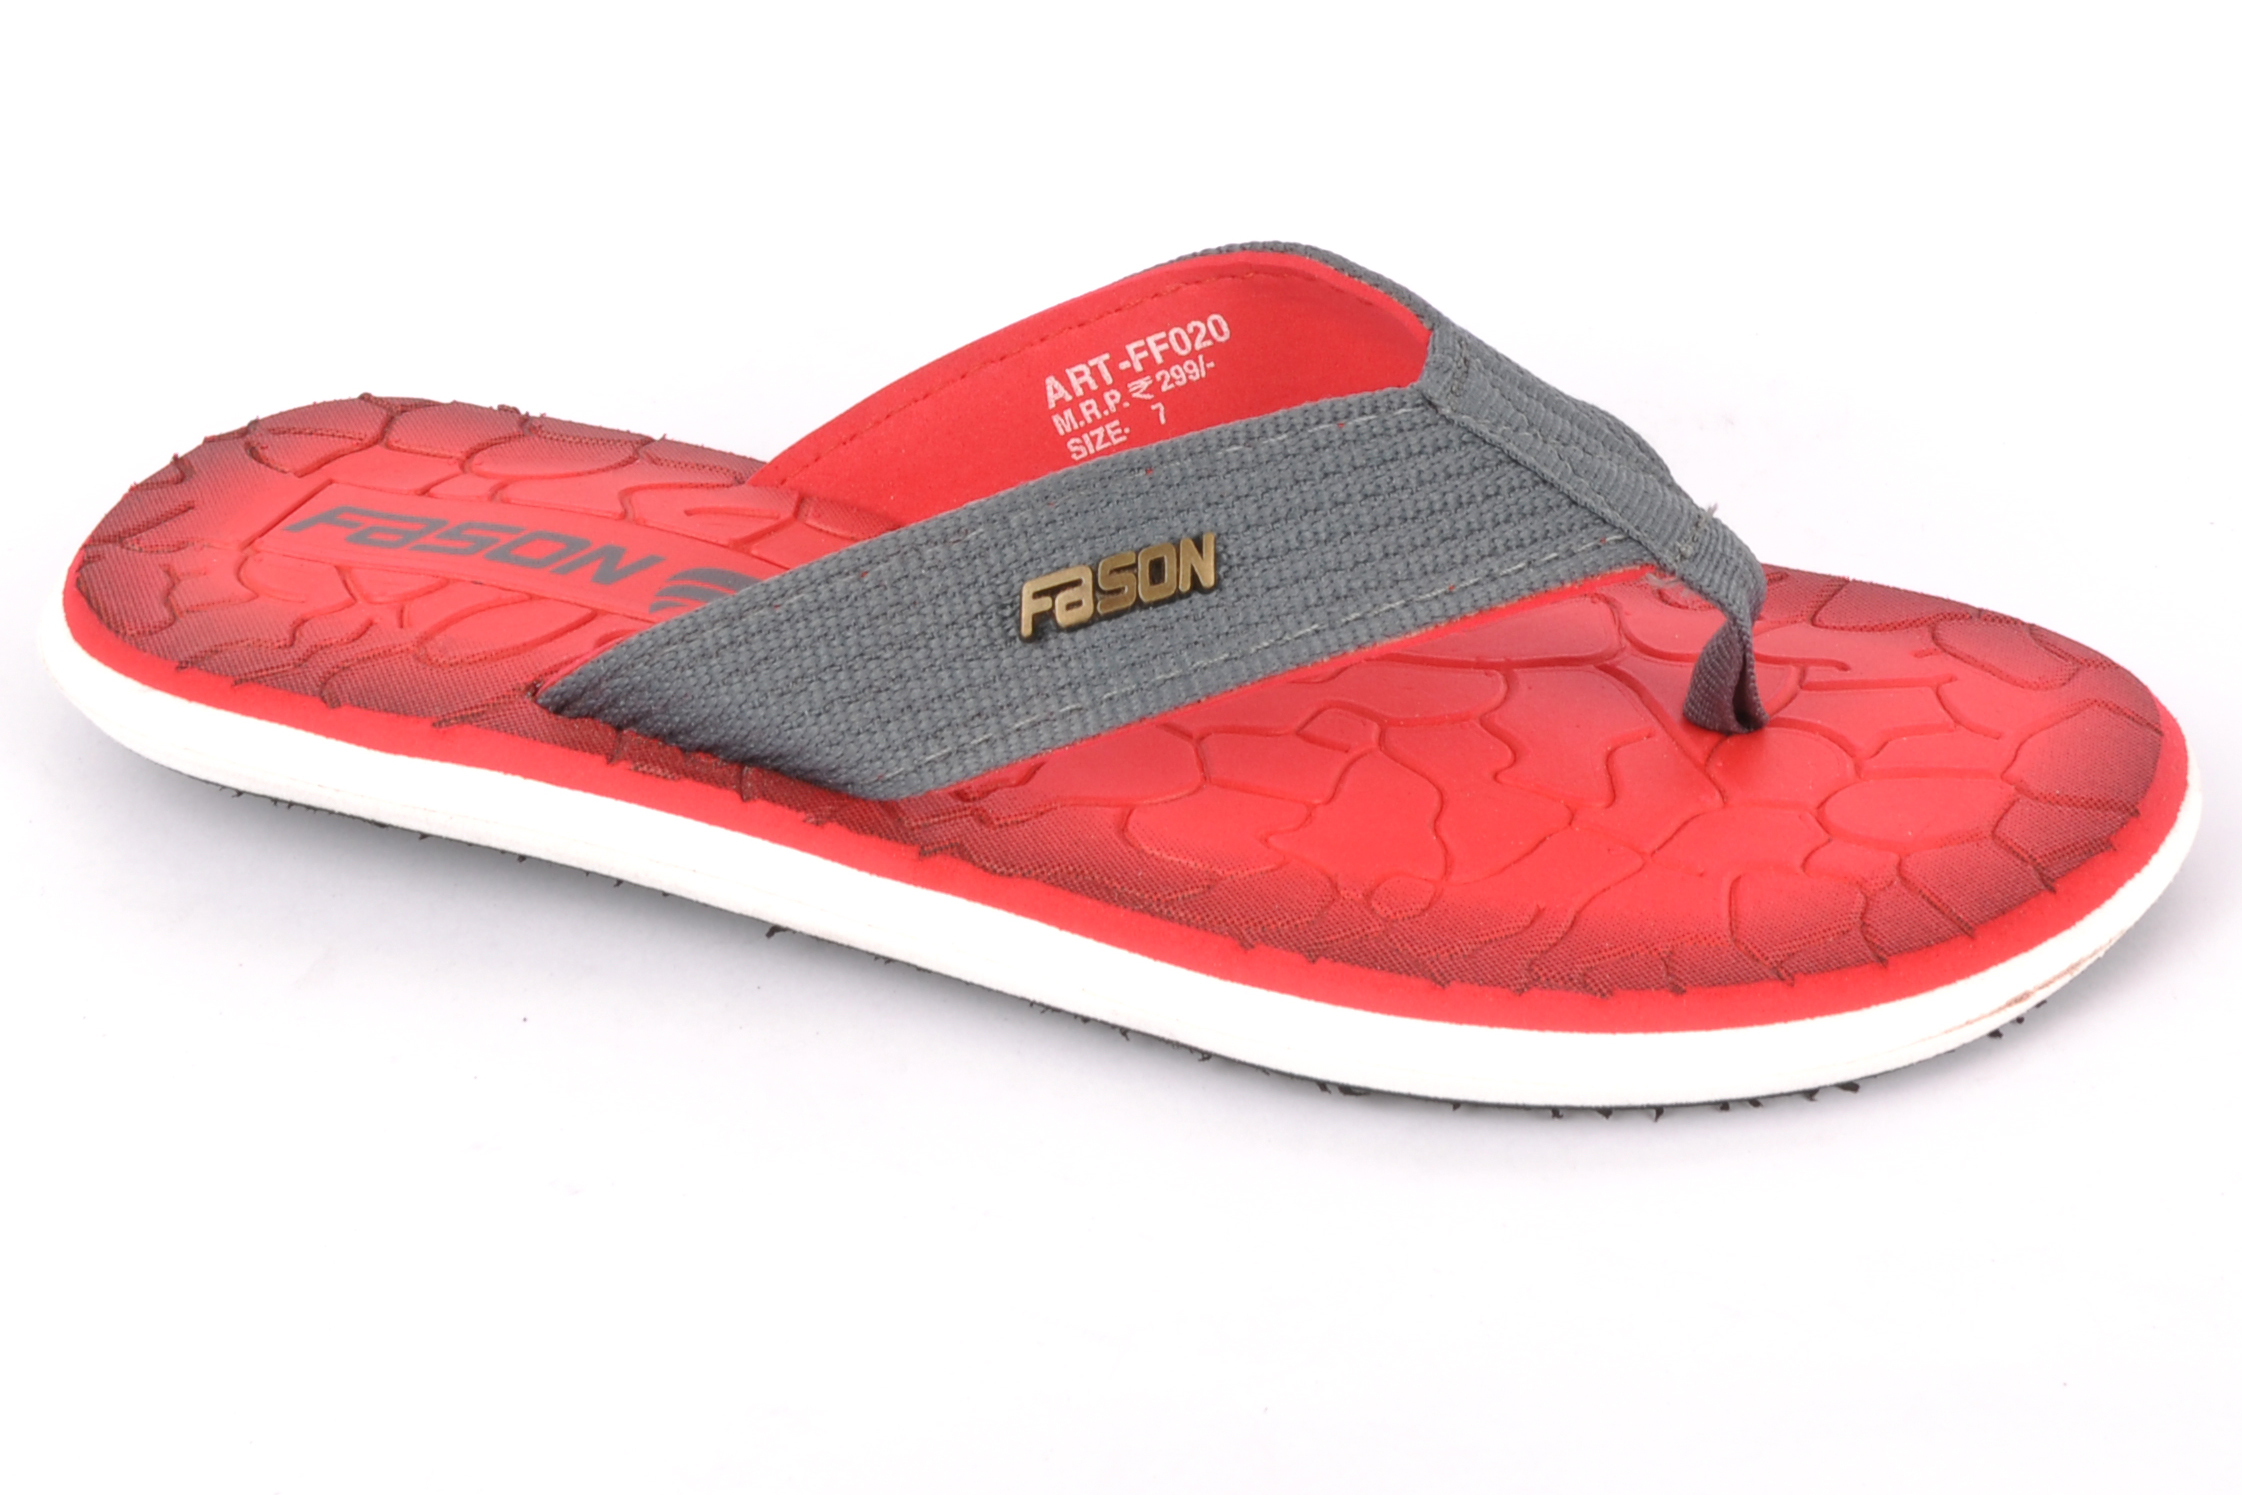 Red & grey flip flop slipper